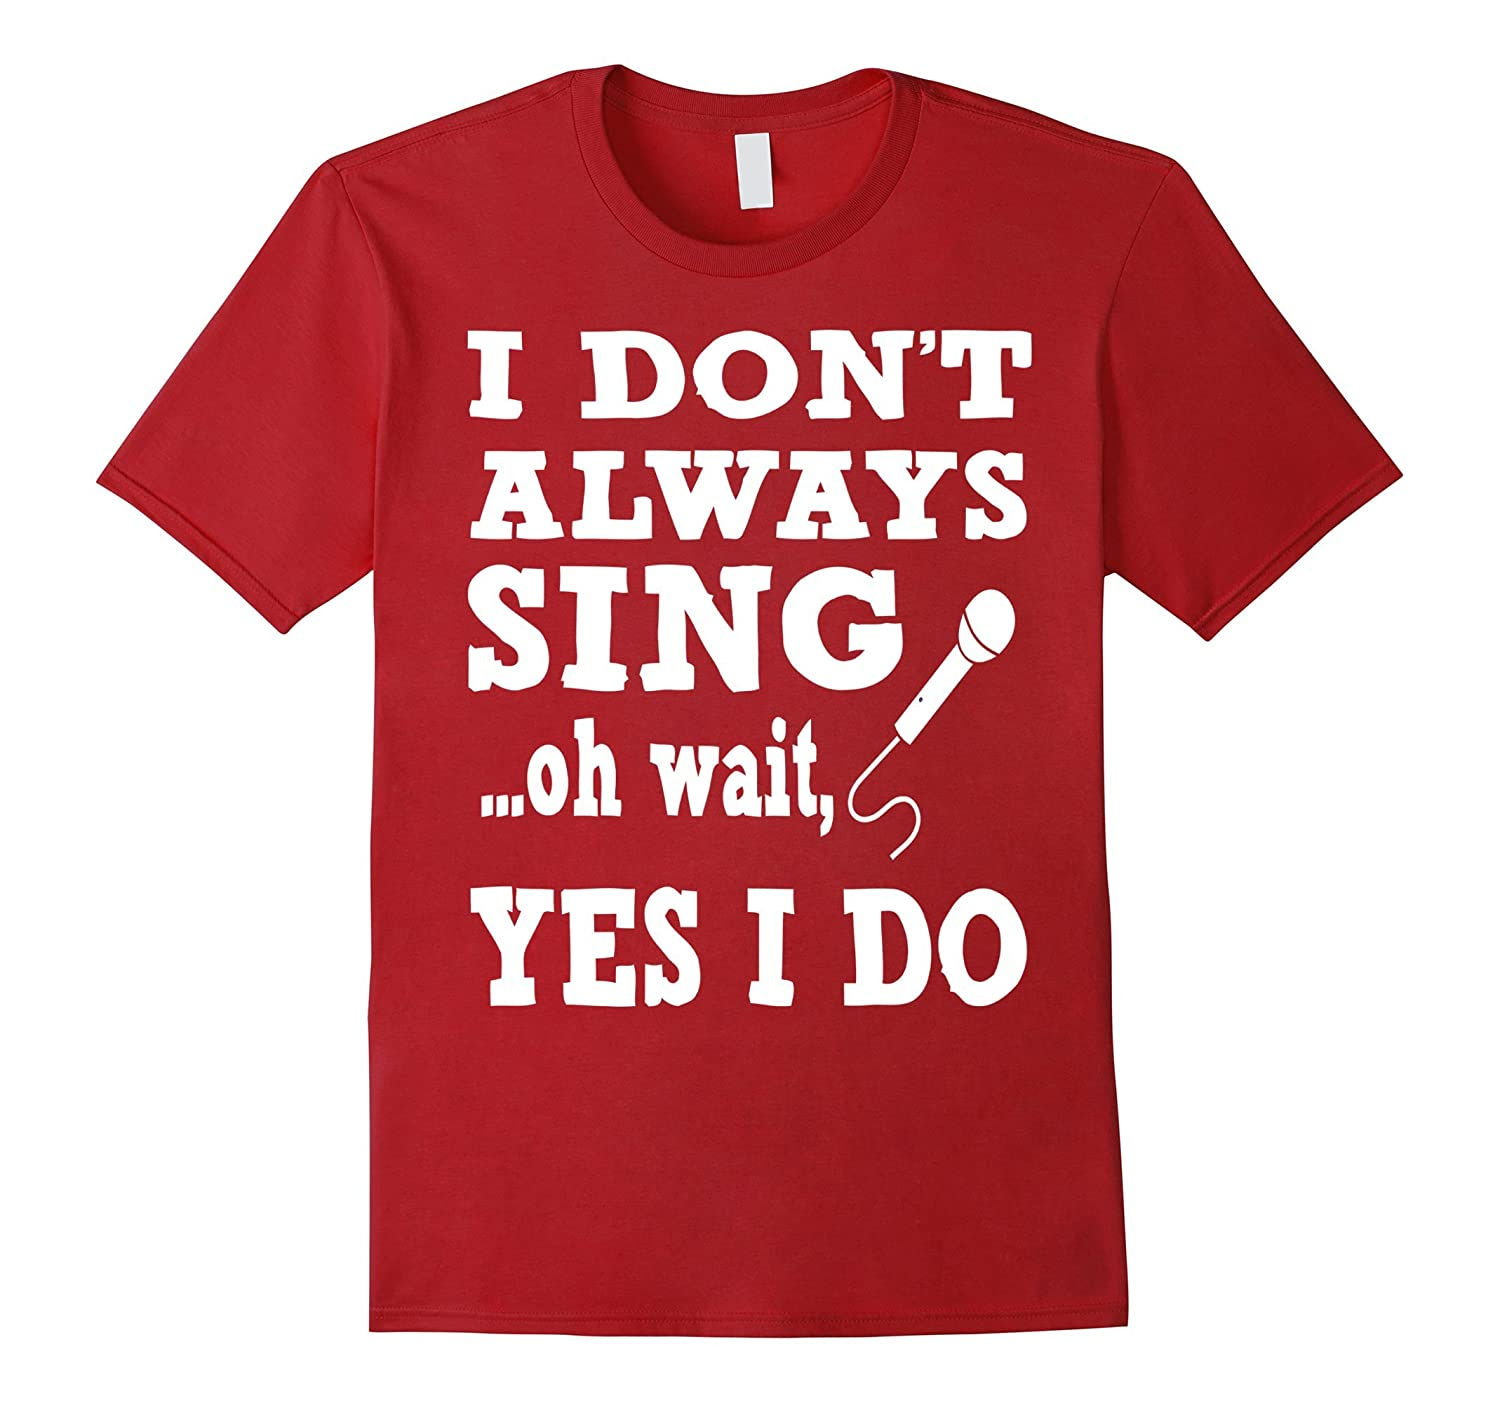 I don't always sing oh wait yes I do - Funny Singing Tshirt-CL